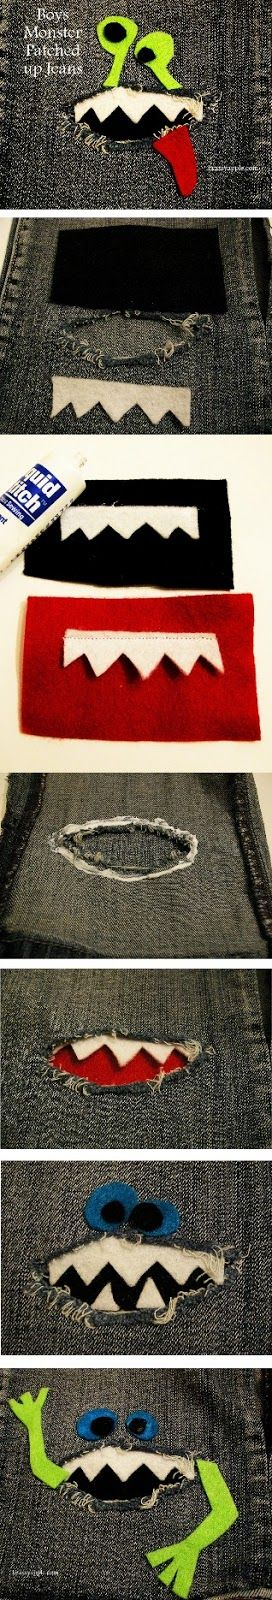 clothes REfashion - Monster patches for jeans